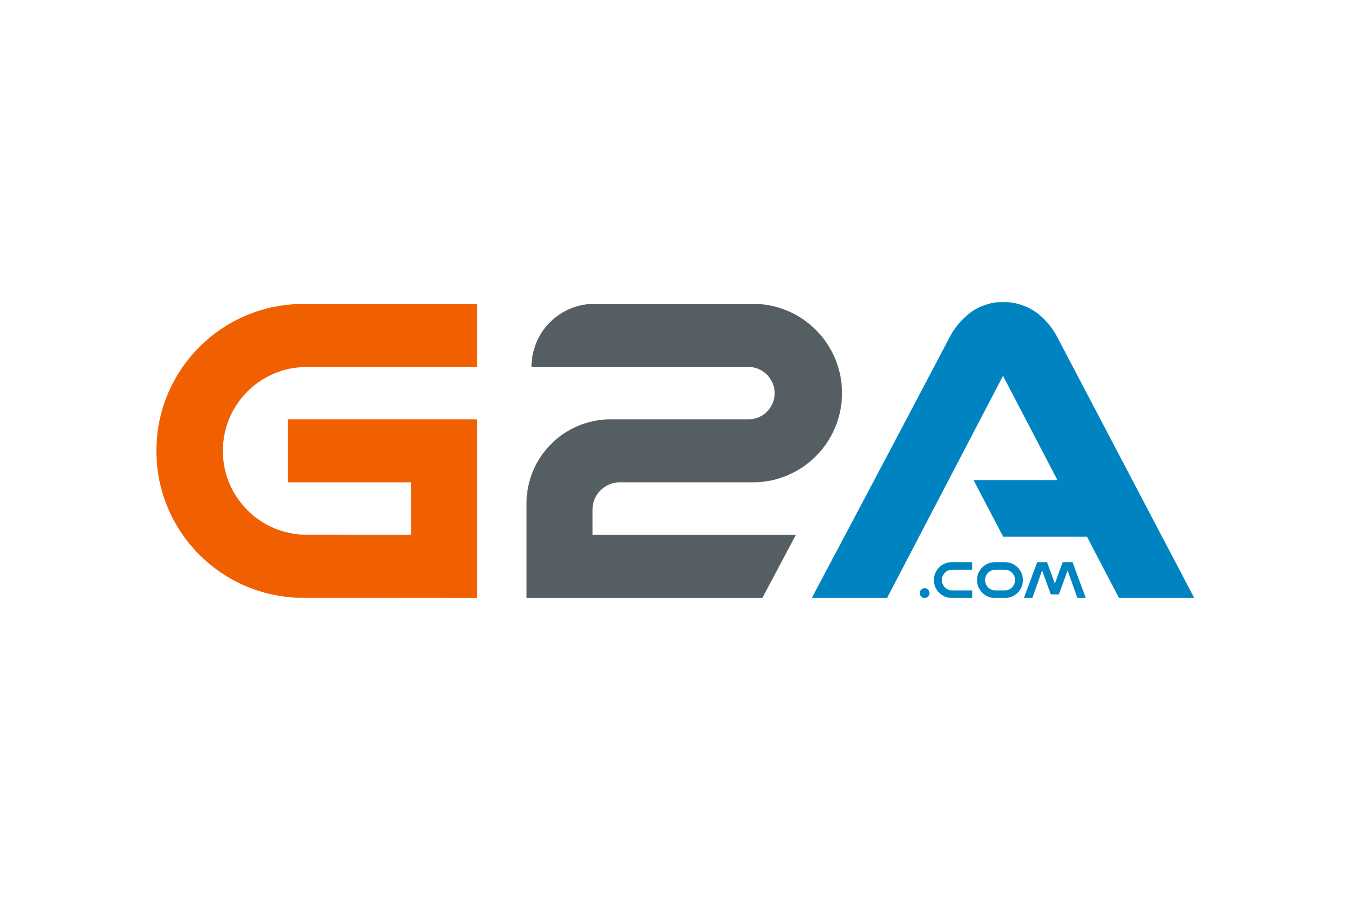 Get any product from G2A for FREE.